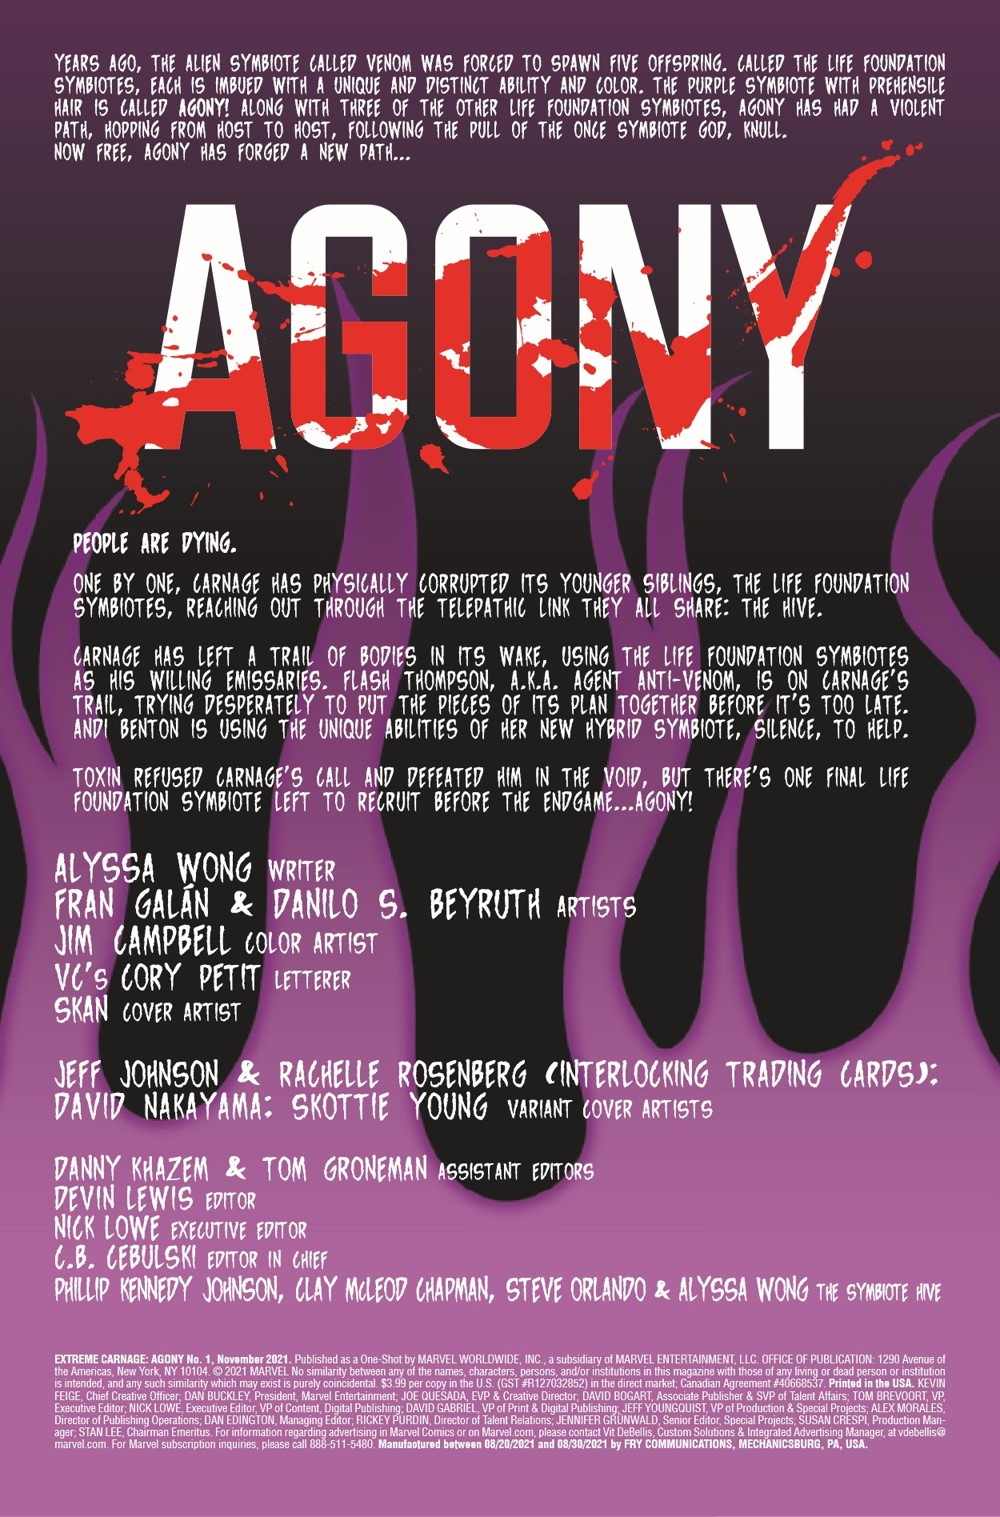 EXTCARNAG2021001_Preview-2 ComicList Previews: EXTREME CARNAGE AGONY #1